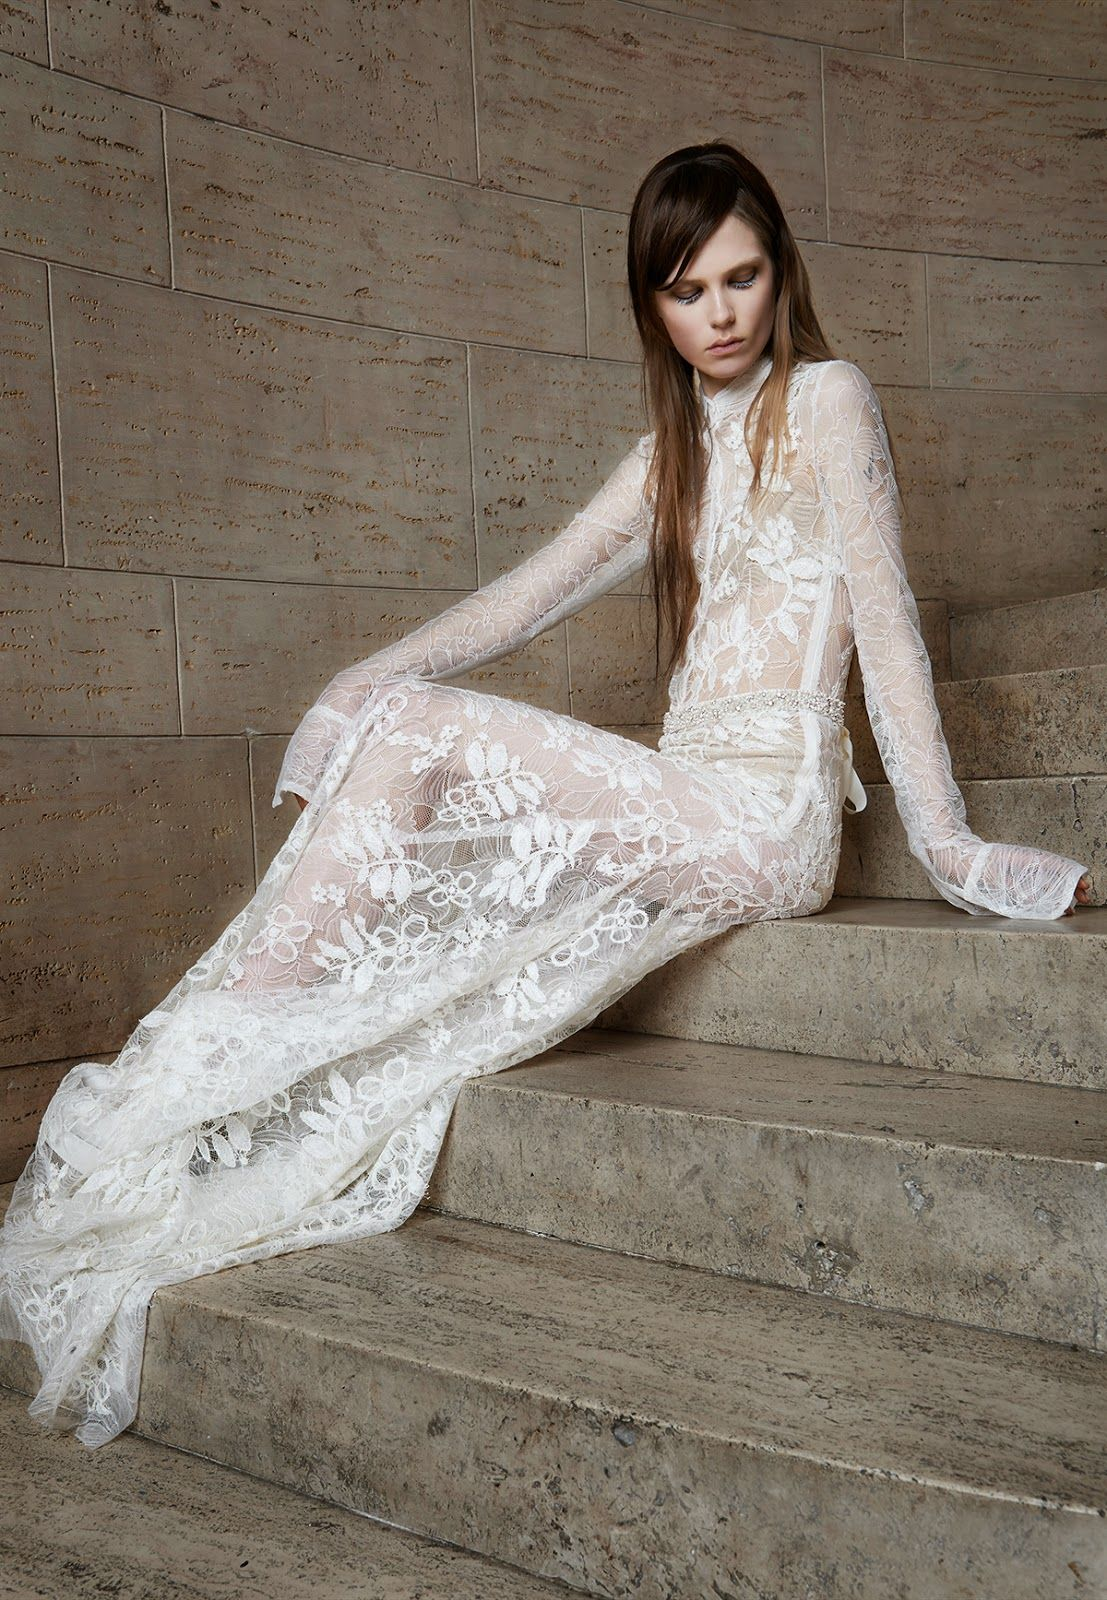 Communication on this topic: Spring Peek: Vera Wang 2015 Bridal Collection, spring-peek-vera-wang-2015-bridal-collection/